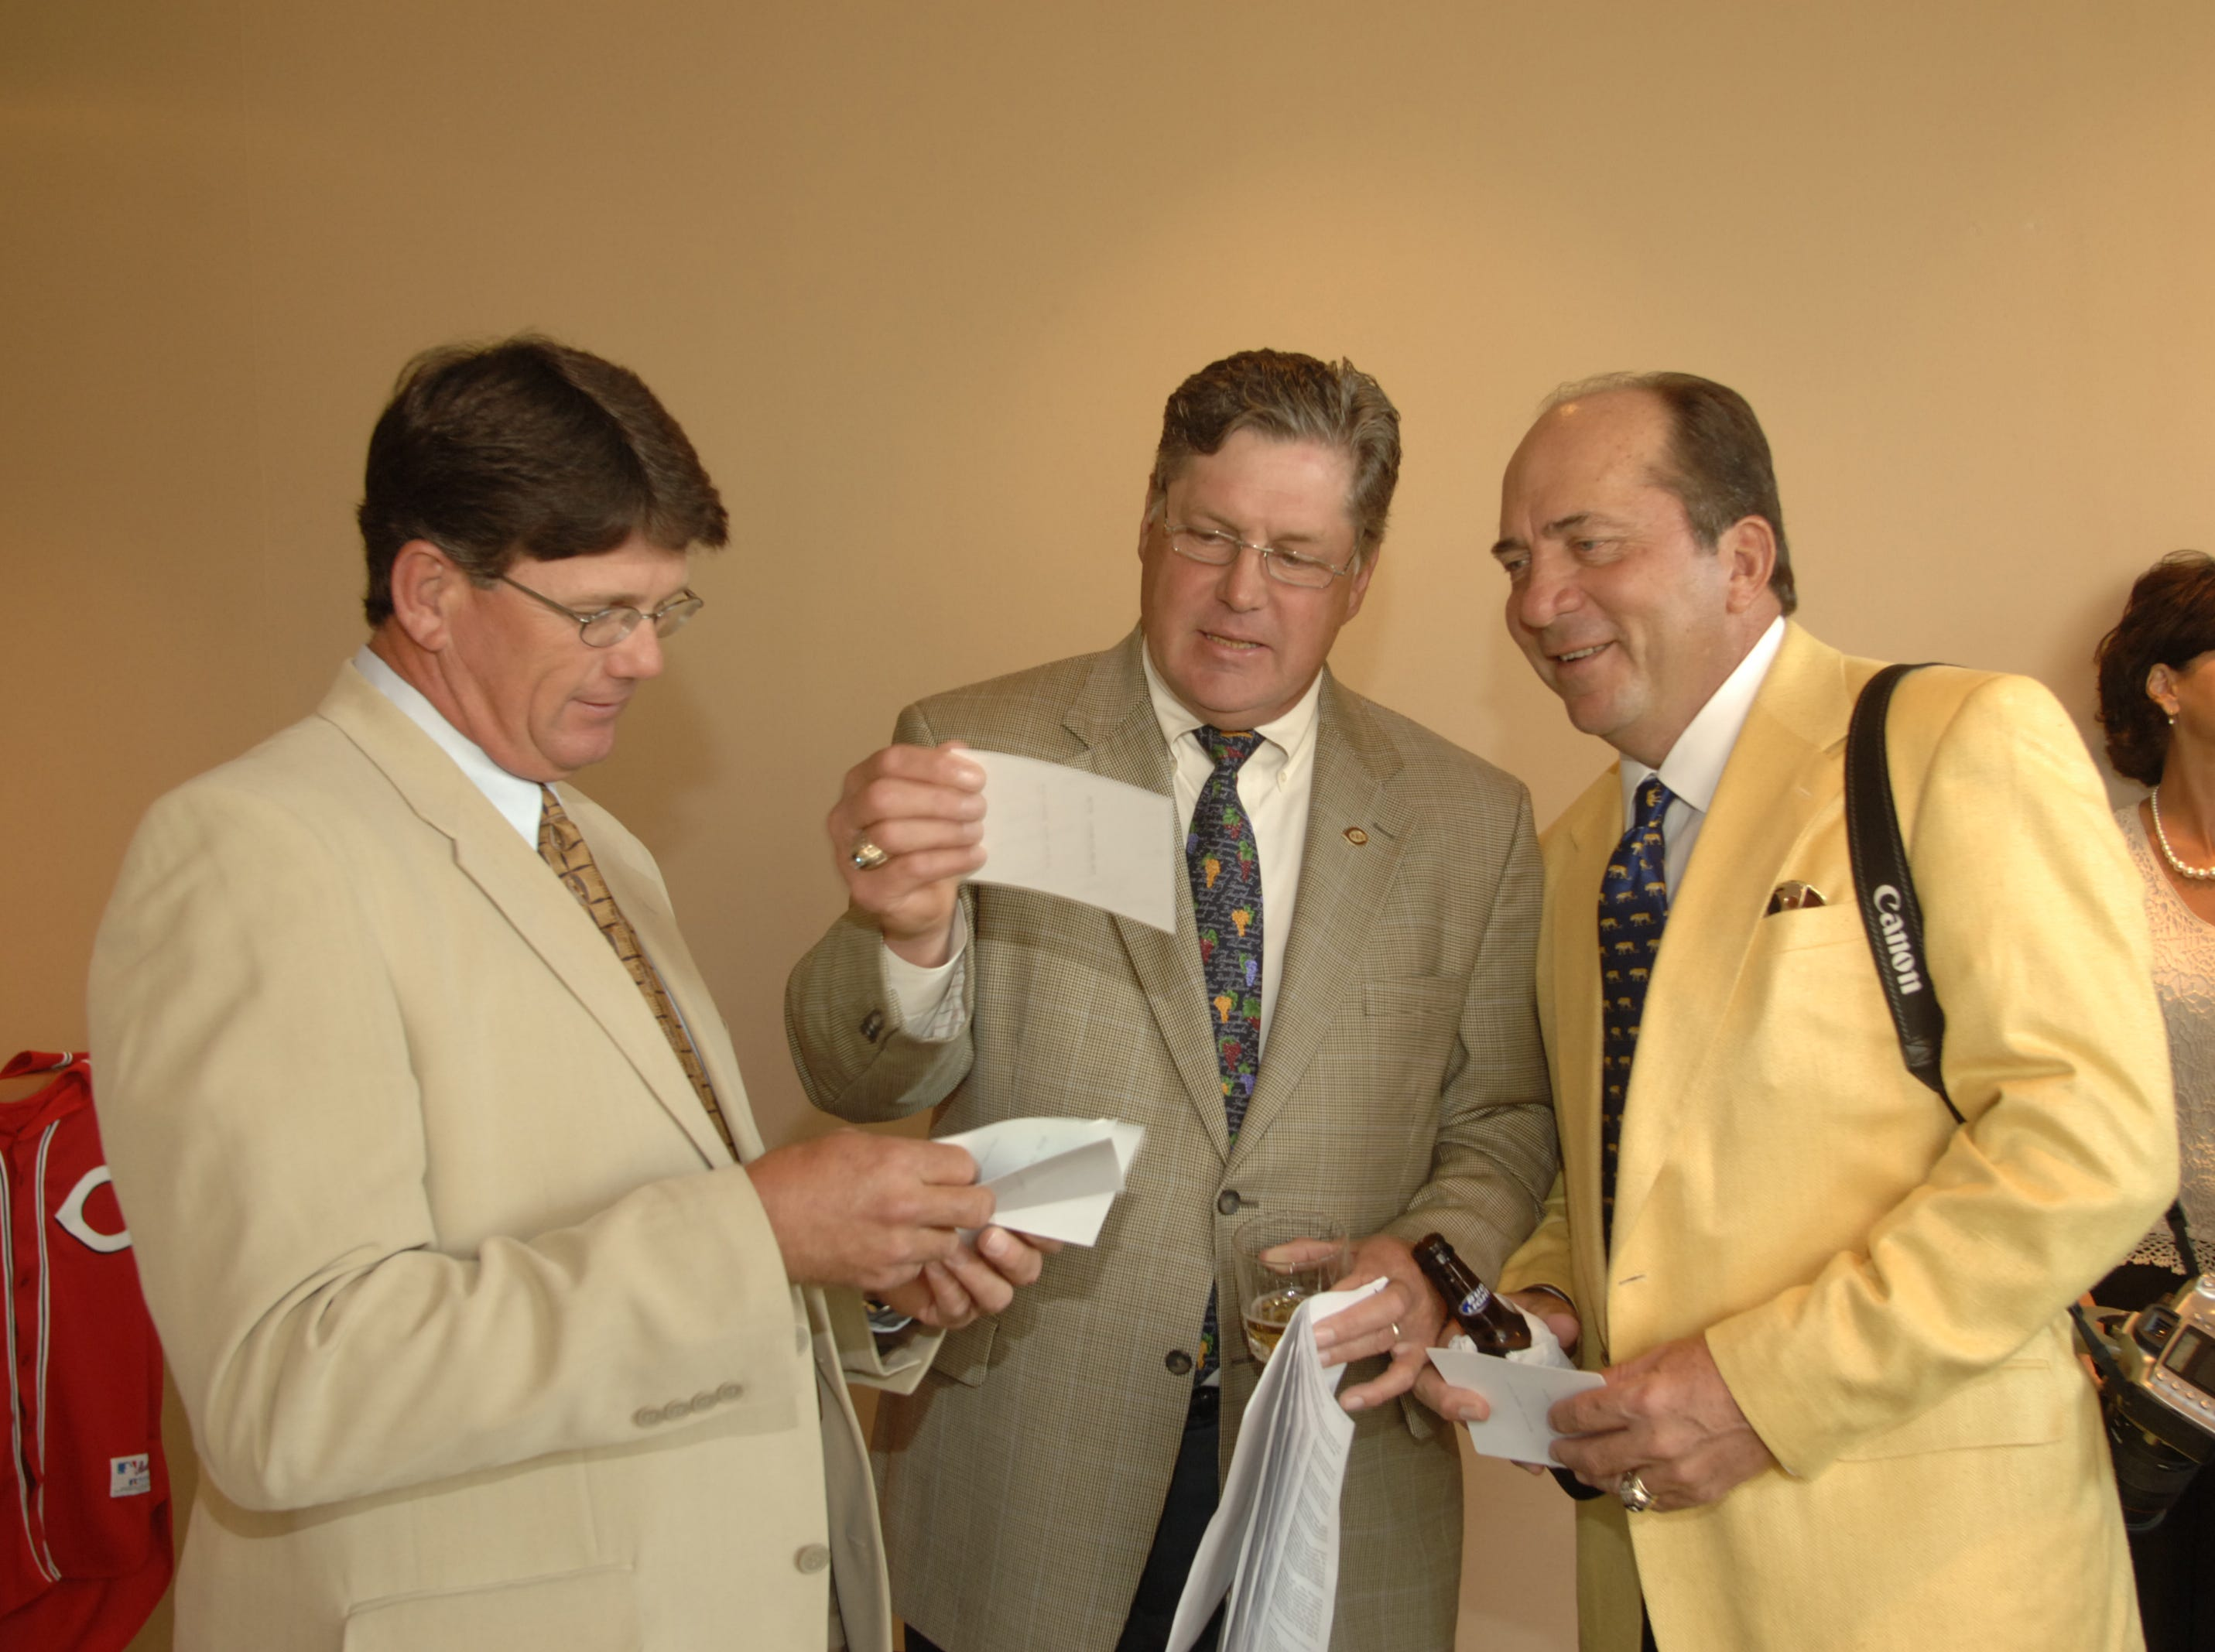 Proud Papa, Johnny Bench (right), shows pictures of his newborn son, Justin Palmer Bench, to Reds pitching coach, Tom Hume (left), and new member of the Reds Hall of Fame, Tom Seaver.